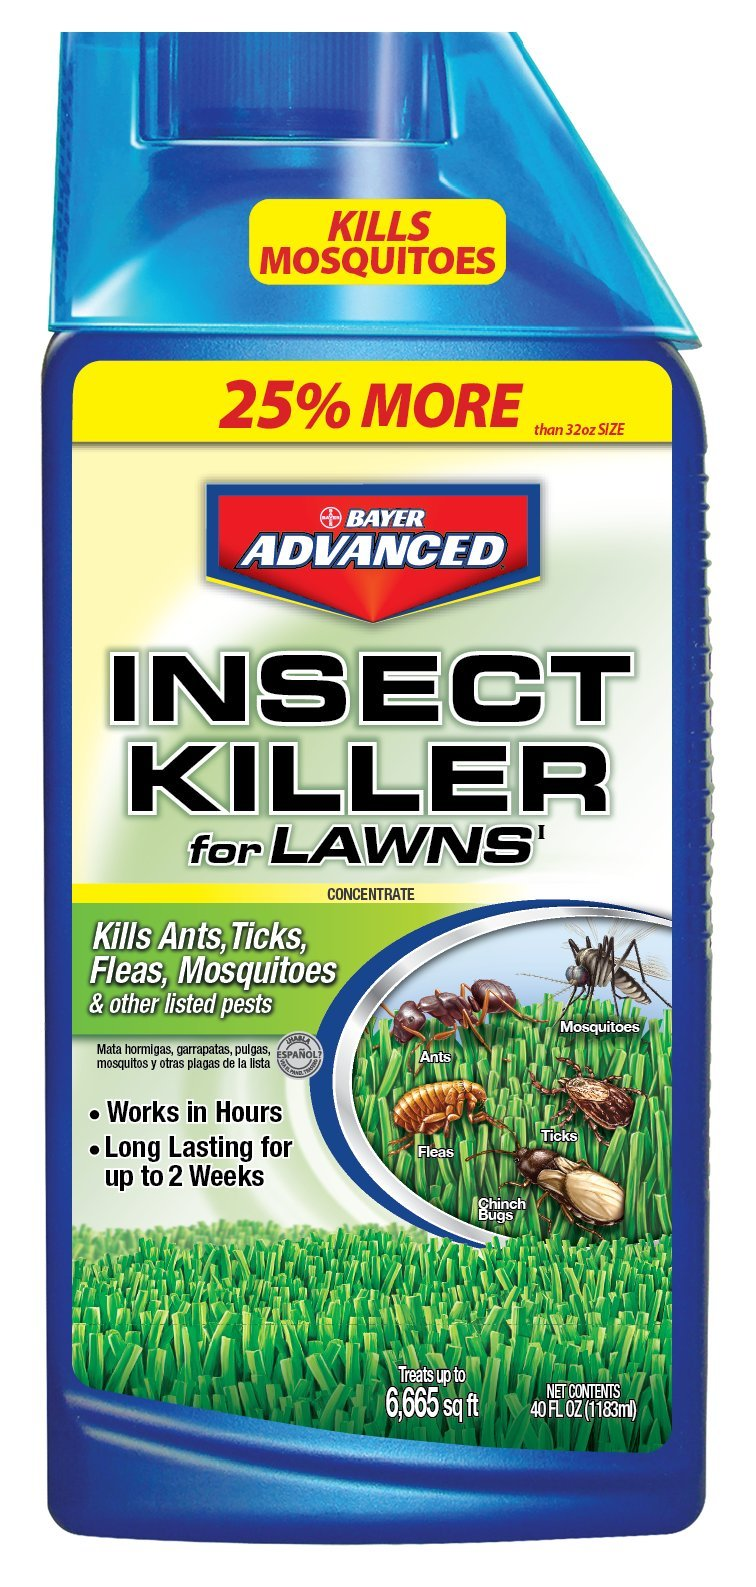 Bayer Advanced 100532526 Bayer Lawn Insect Killer Concentrate, 40 oz, White